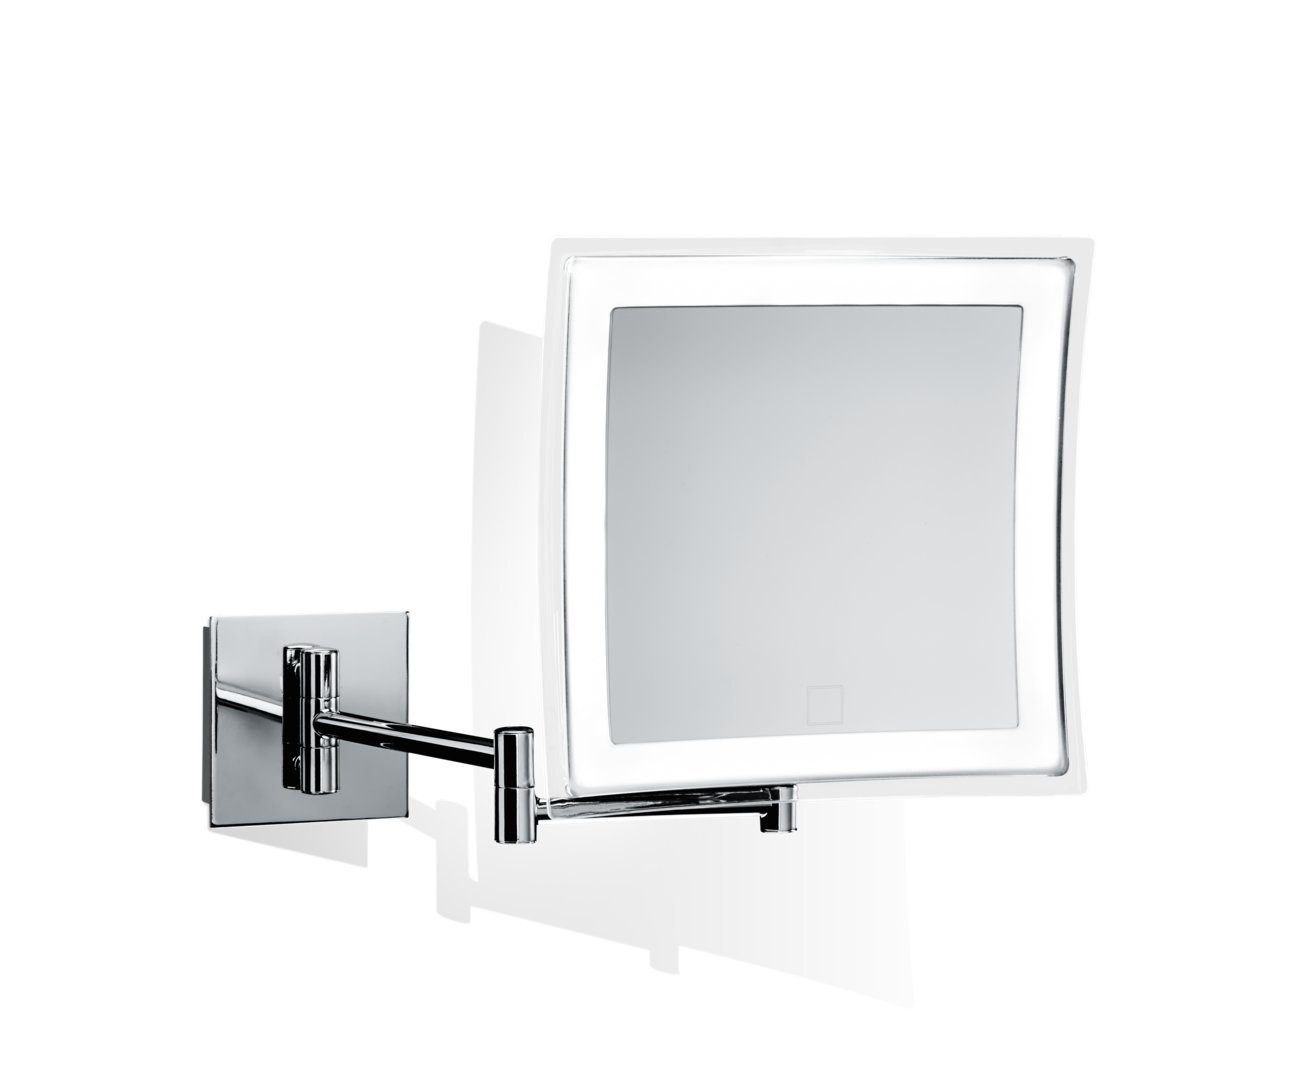 DWBA Touch Wall Cosmetic Makeup 5X LED Light Dimmer Magnifying Mirror, Chrome (Polished Chrome)